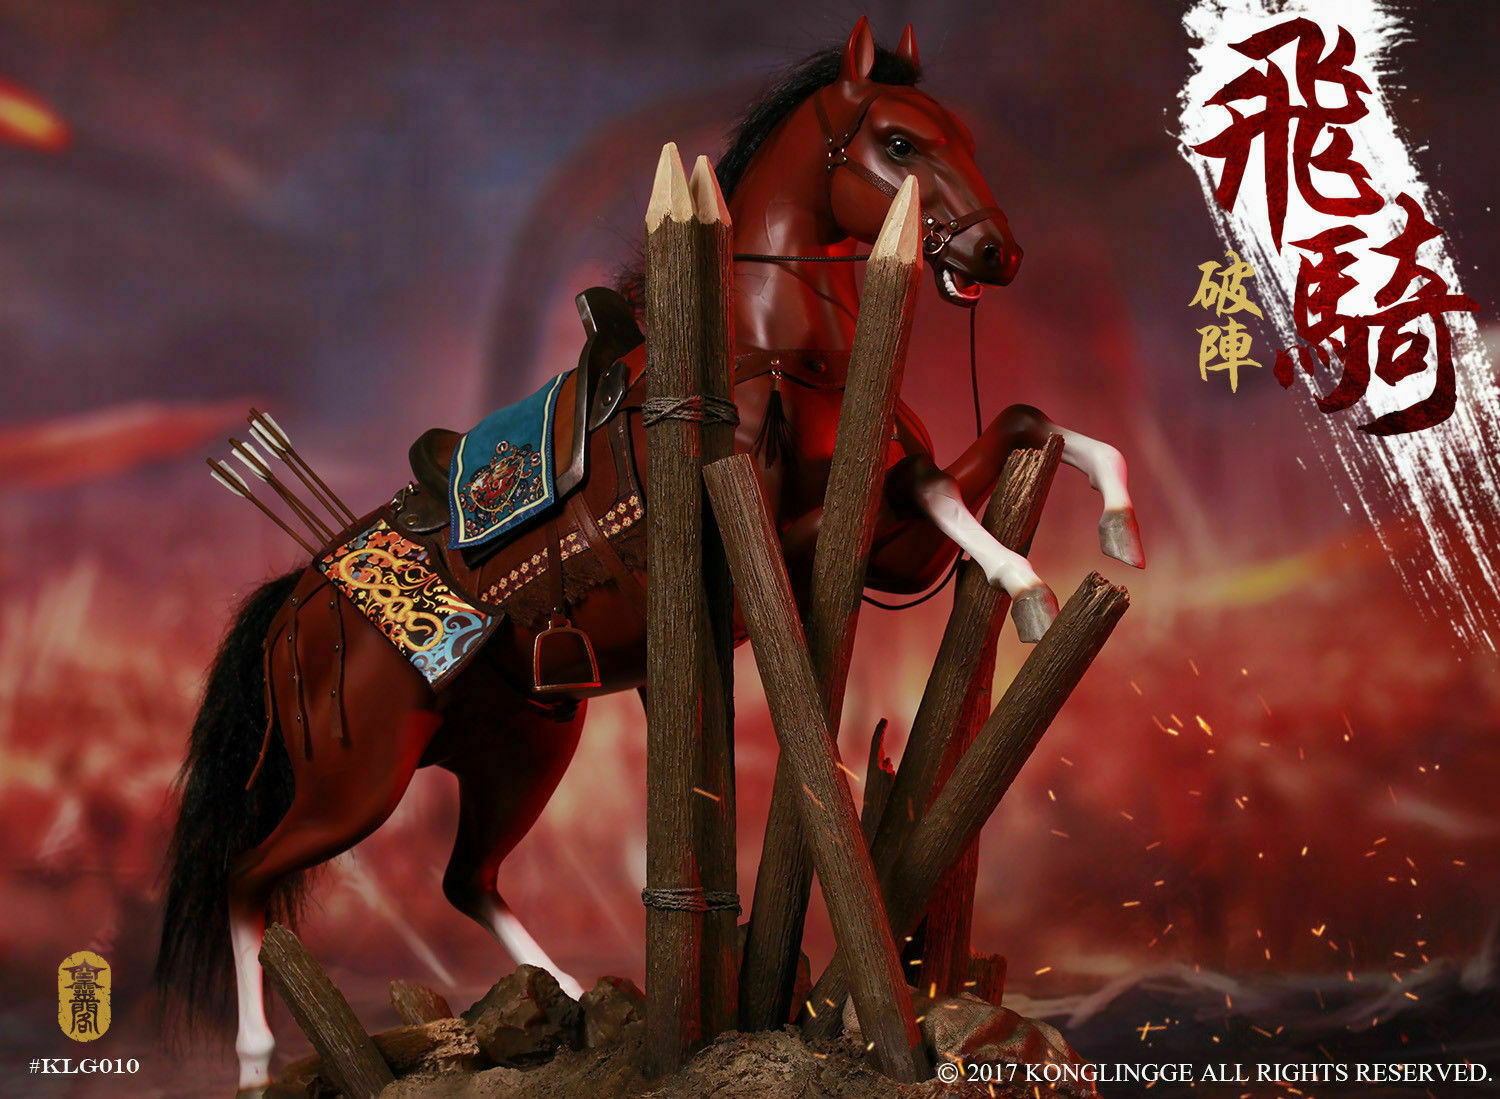 Kong Ling Ge KLG010 1 6 Scale Platform & Horse Model Figure Collectible Toy